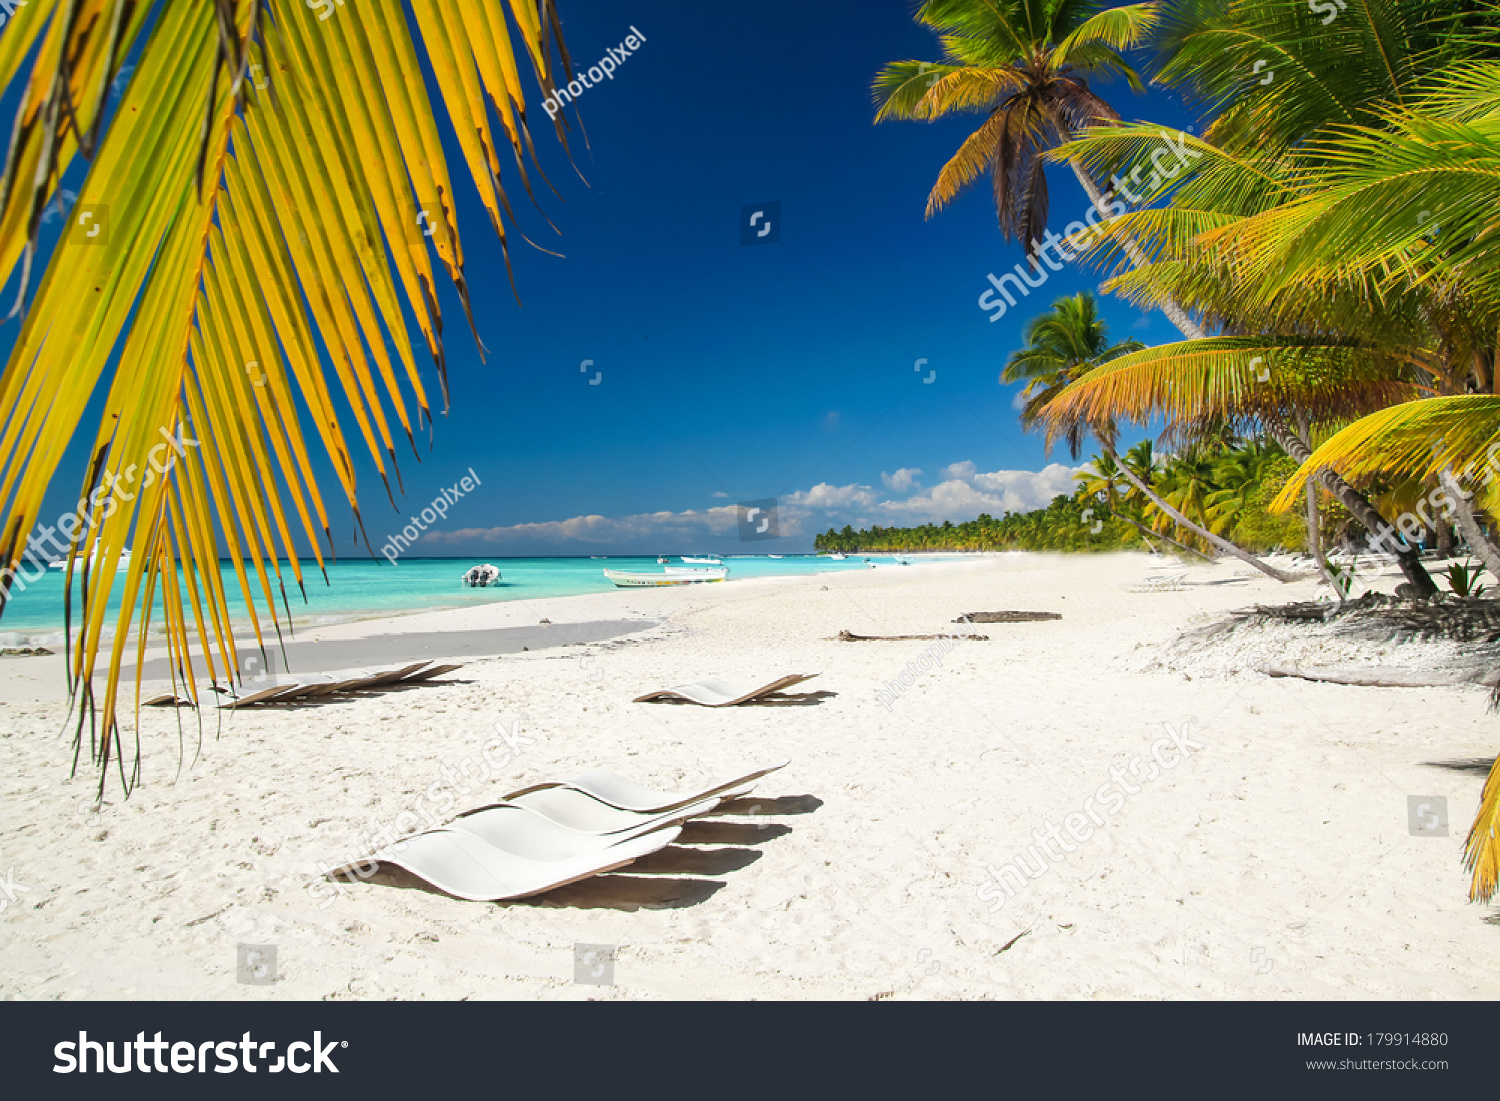 Caribbean beach with chaise longues stock photo 179914880 for Beach chaise longue